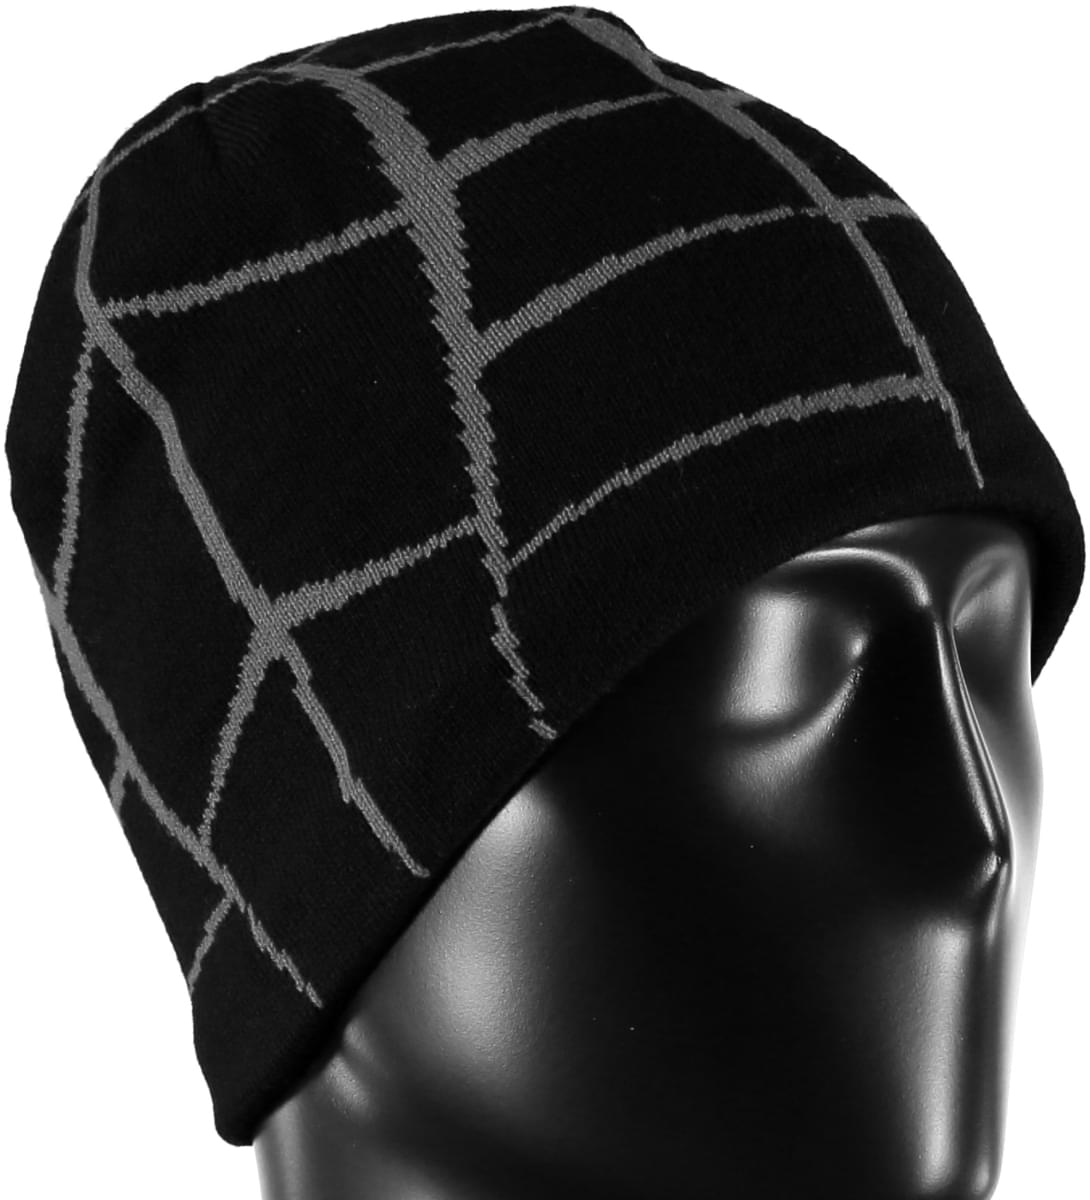 Spyder Men's Web Hat - blk/pol uni